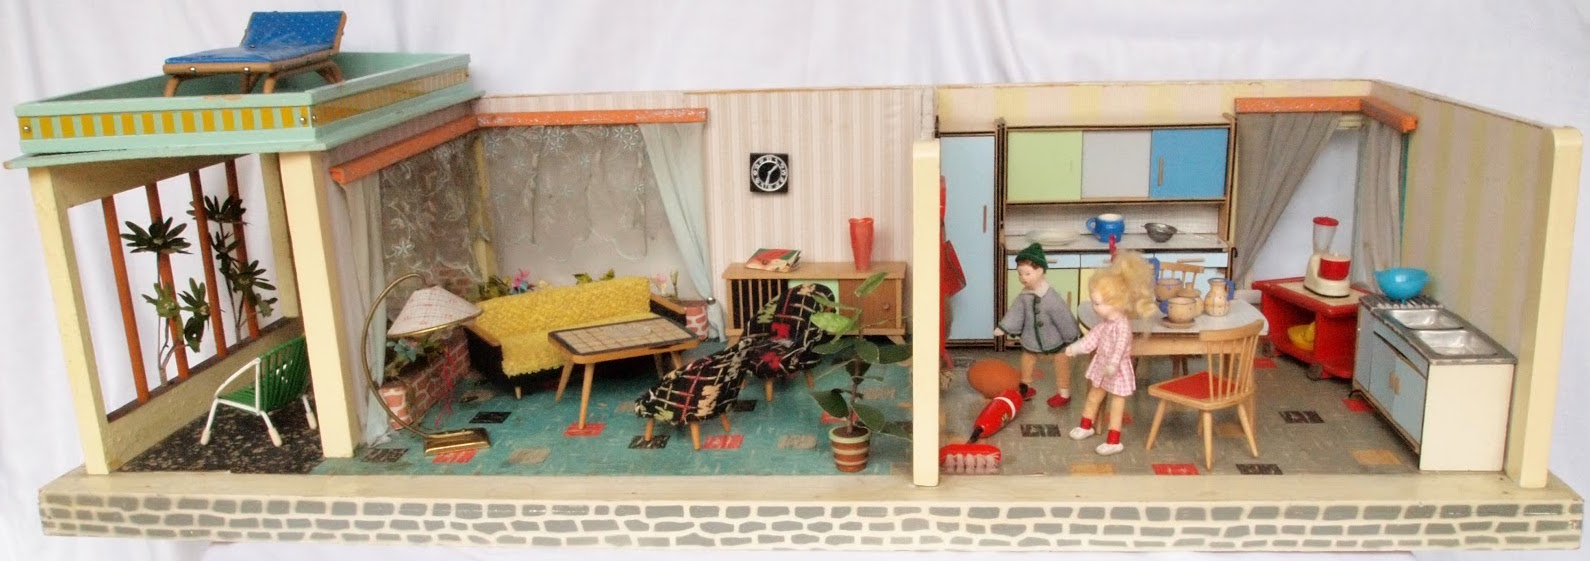 1963 same Schönherr roombox with covered patio as in ad